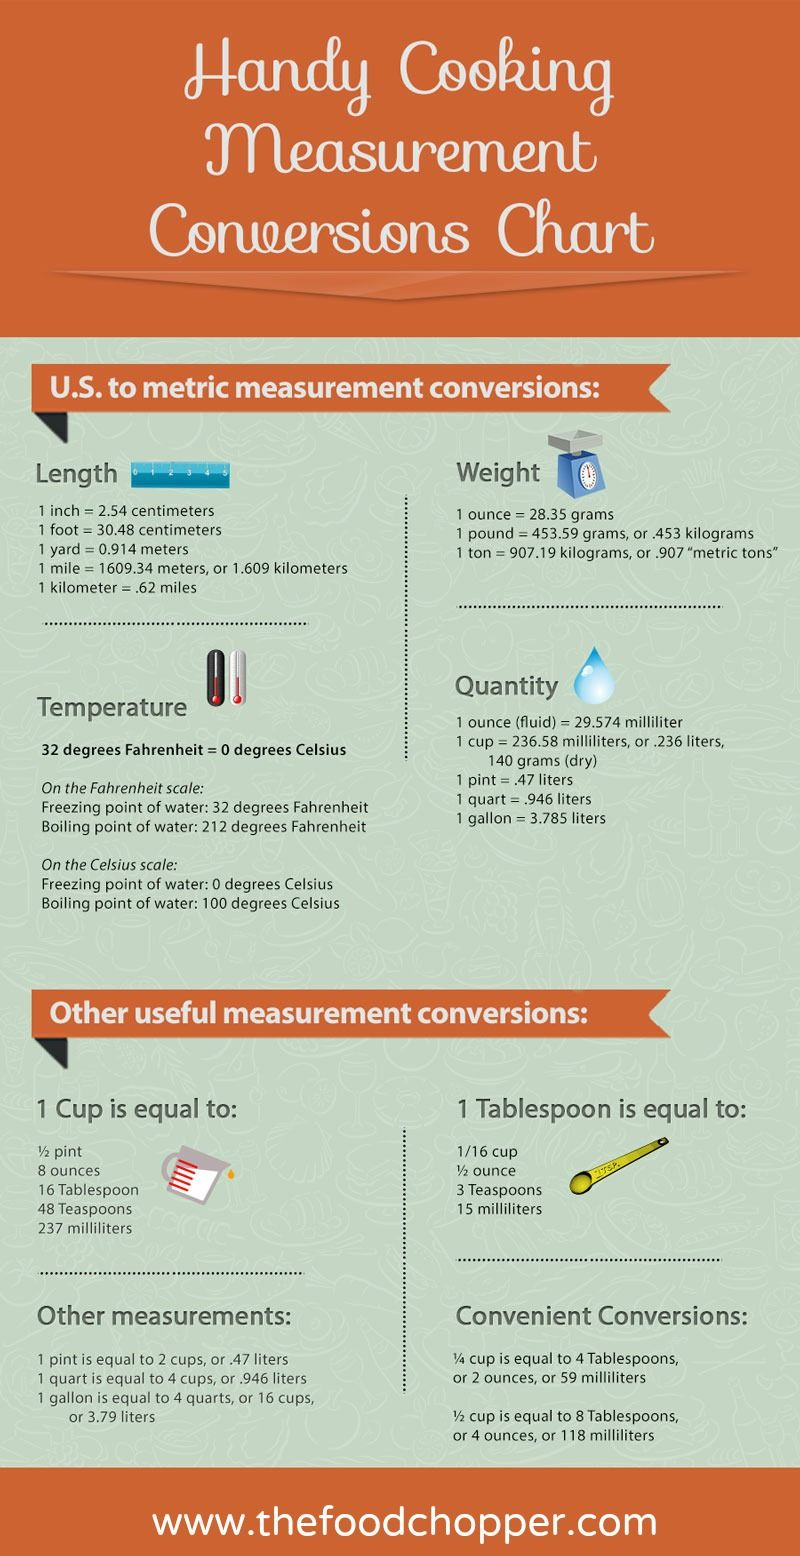 Liters To Pounds Calculator : liters, pounds, calculator, Super, Handy, Cooking, Measurement, Conversions, Chart., Includes, Metric…, Conversions,, Conversion, Chart,